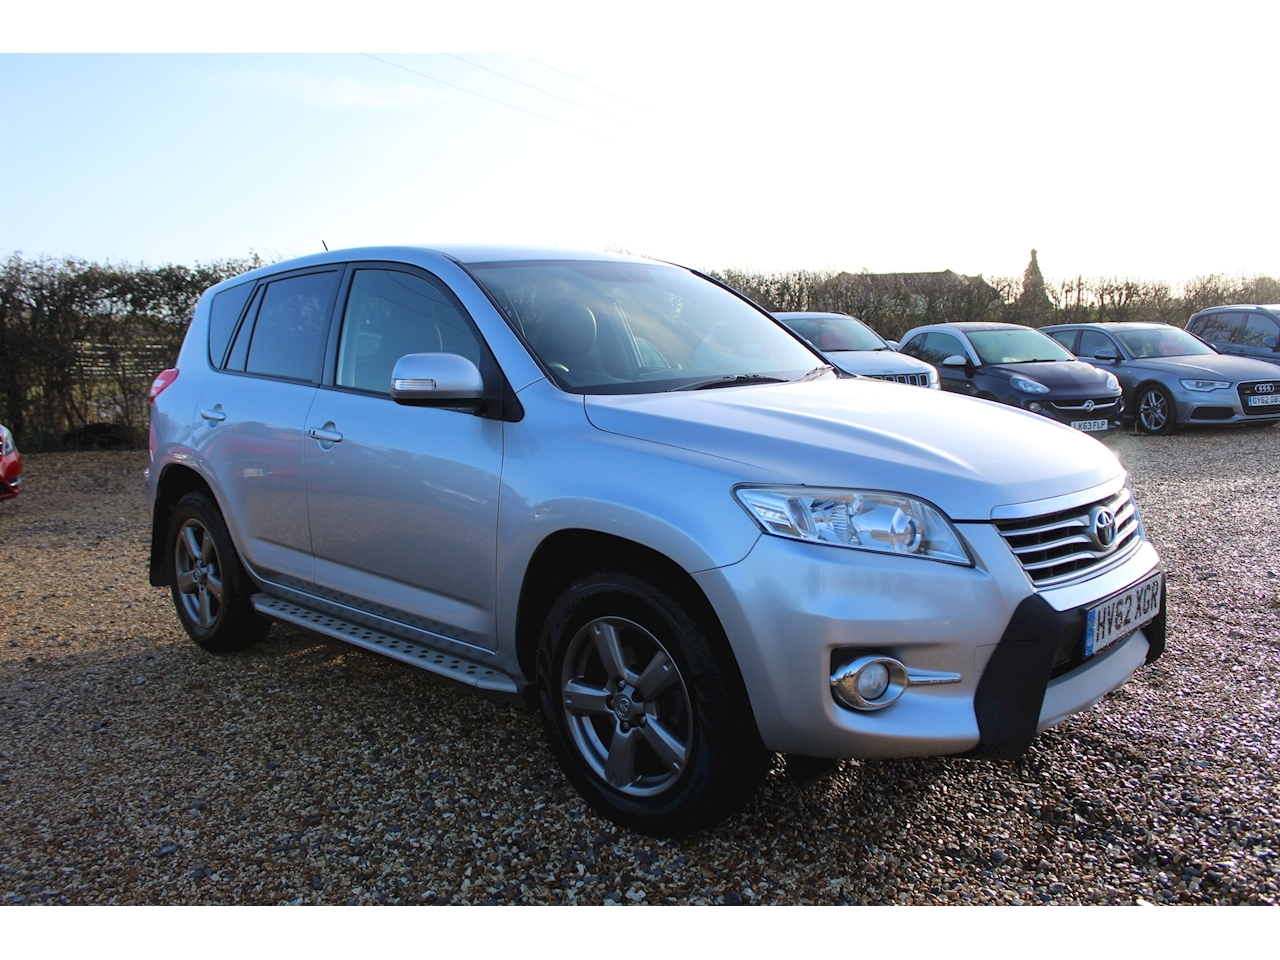 Toyota Rav4 D-4D Xt-R Estate 2.2 Manual Diesel